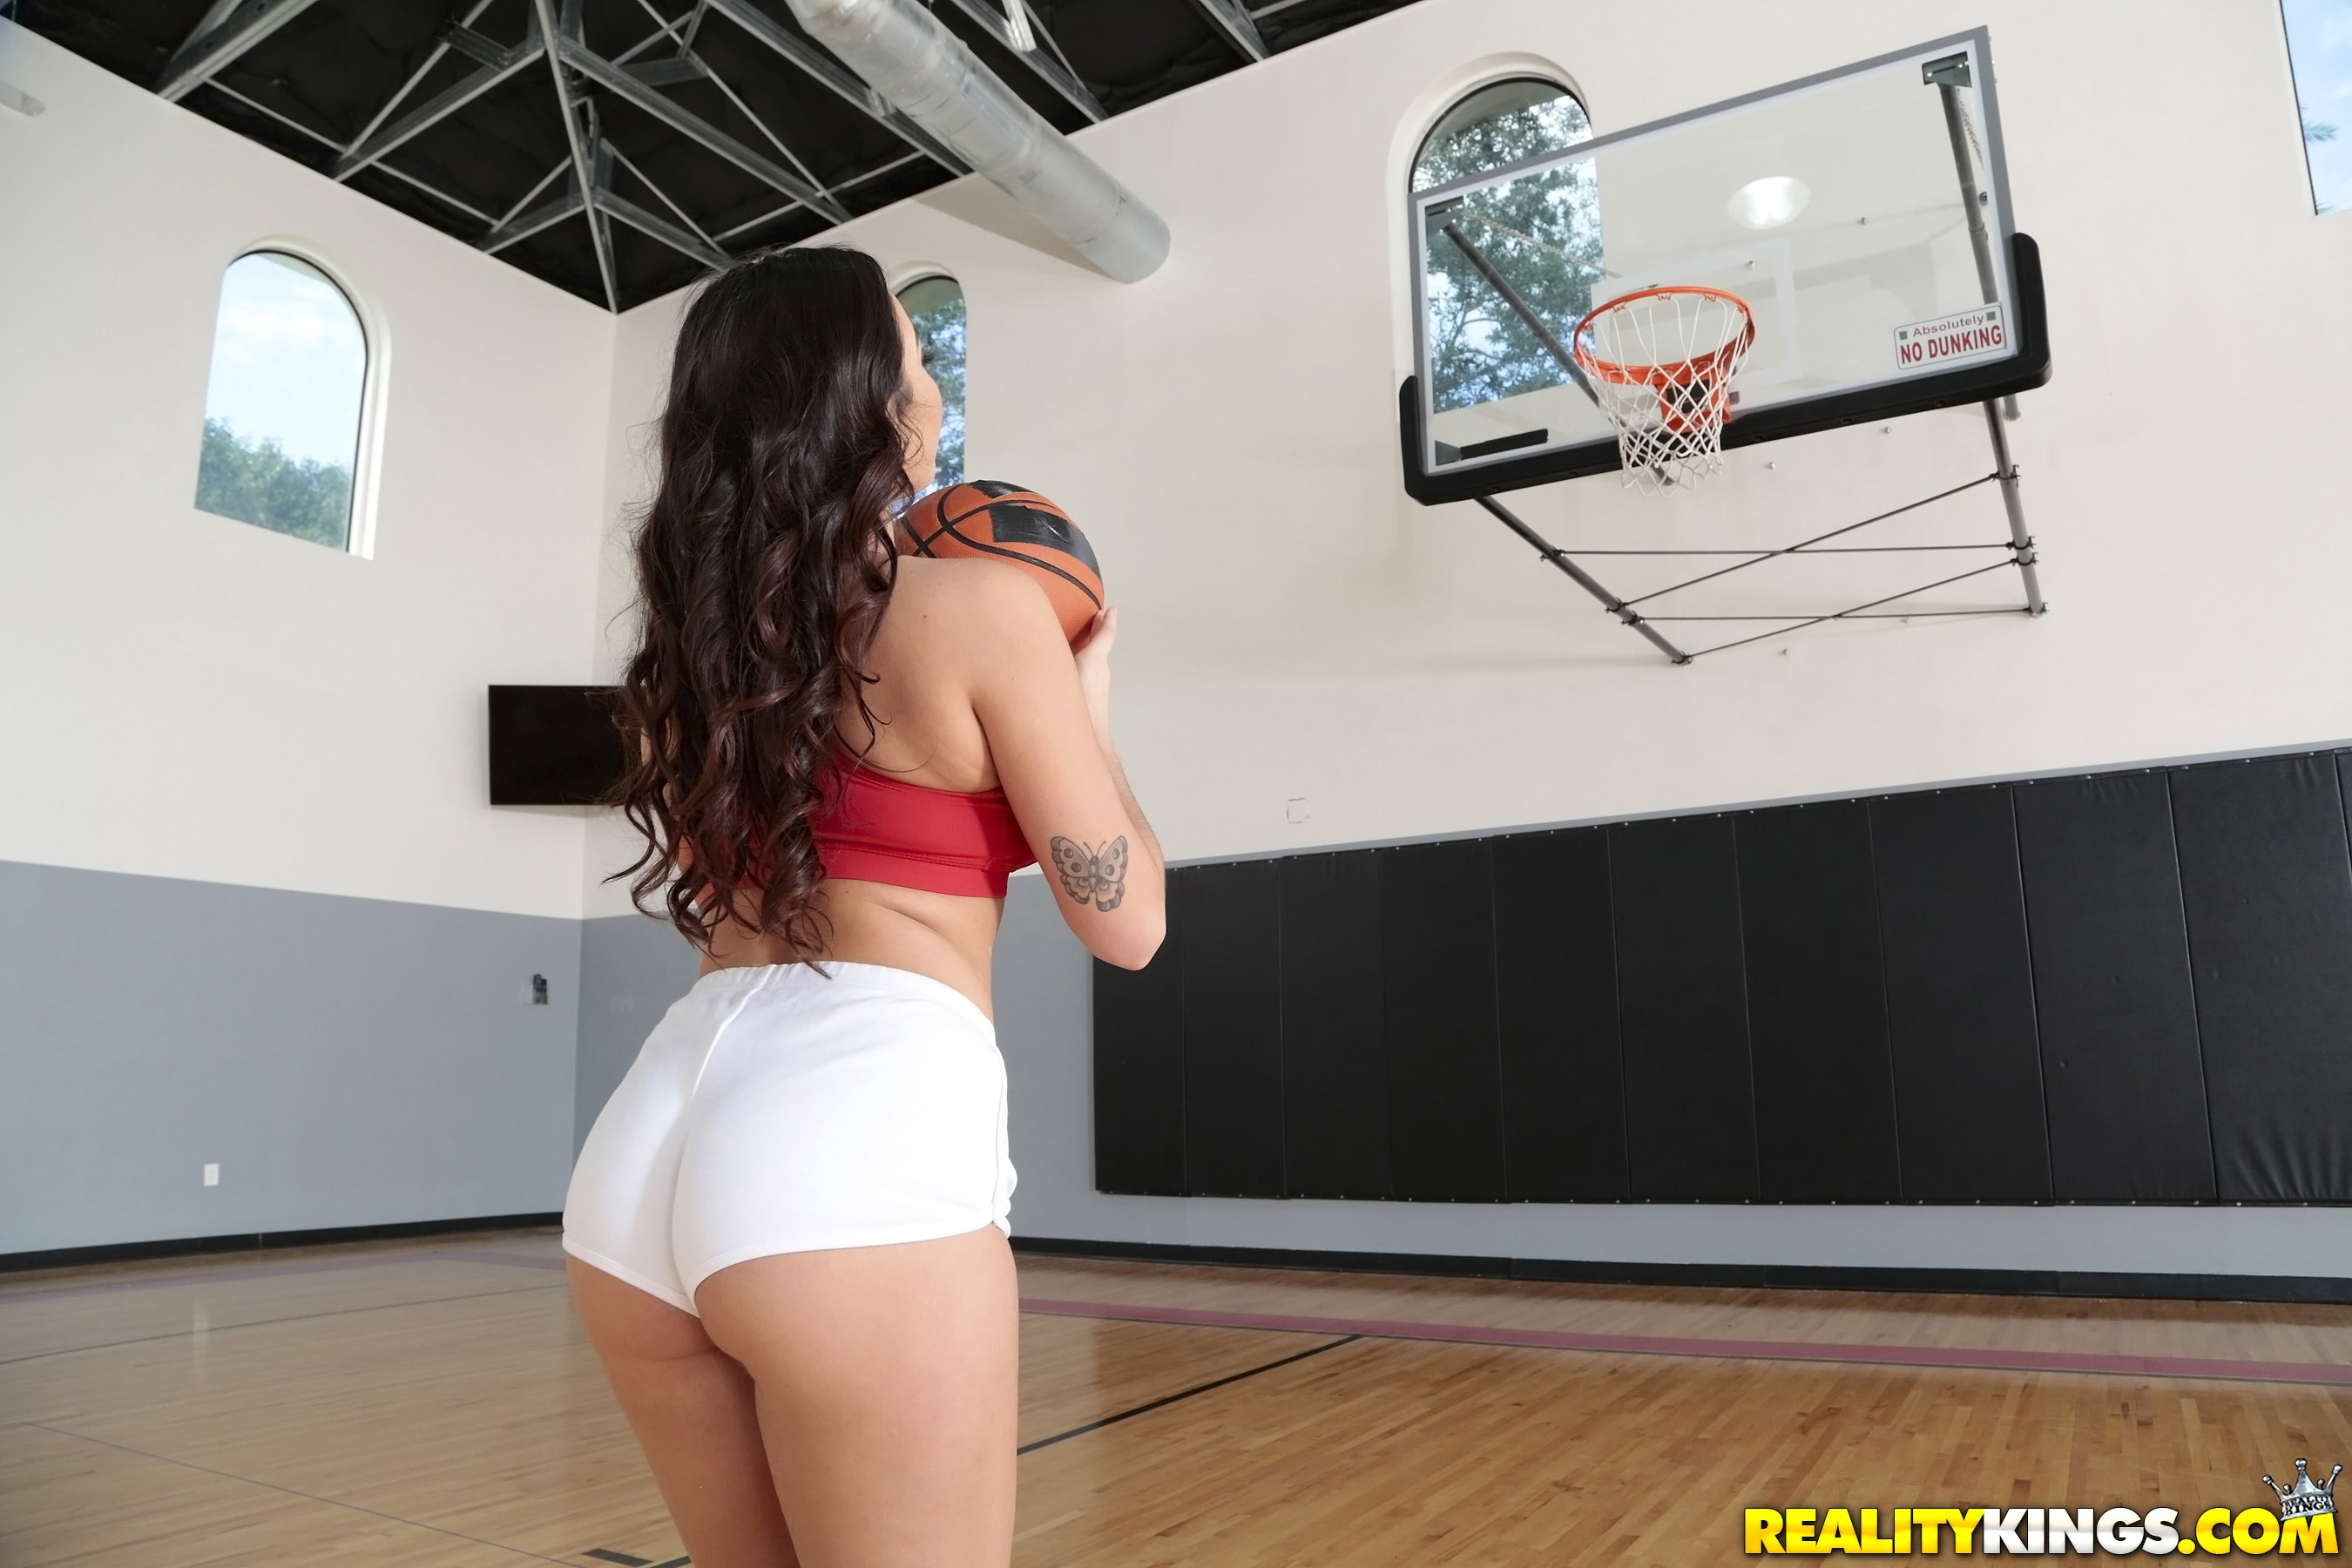 Reality Kings 'Shes ballin' starring Karlee Grey (photo 1)